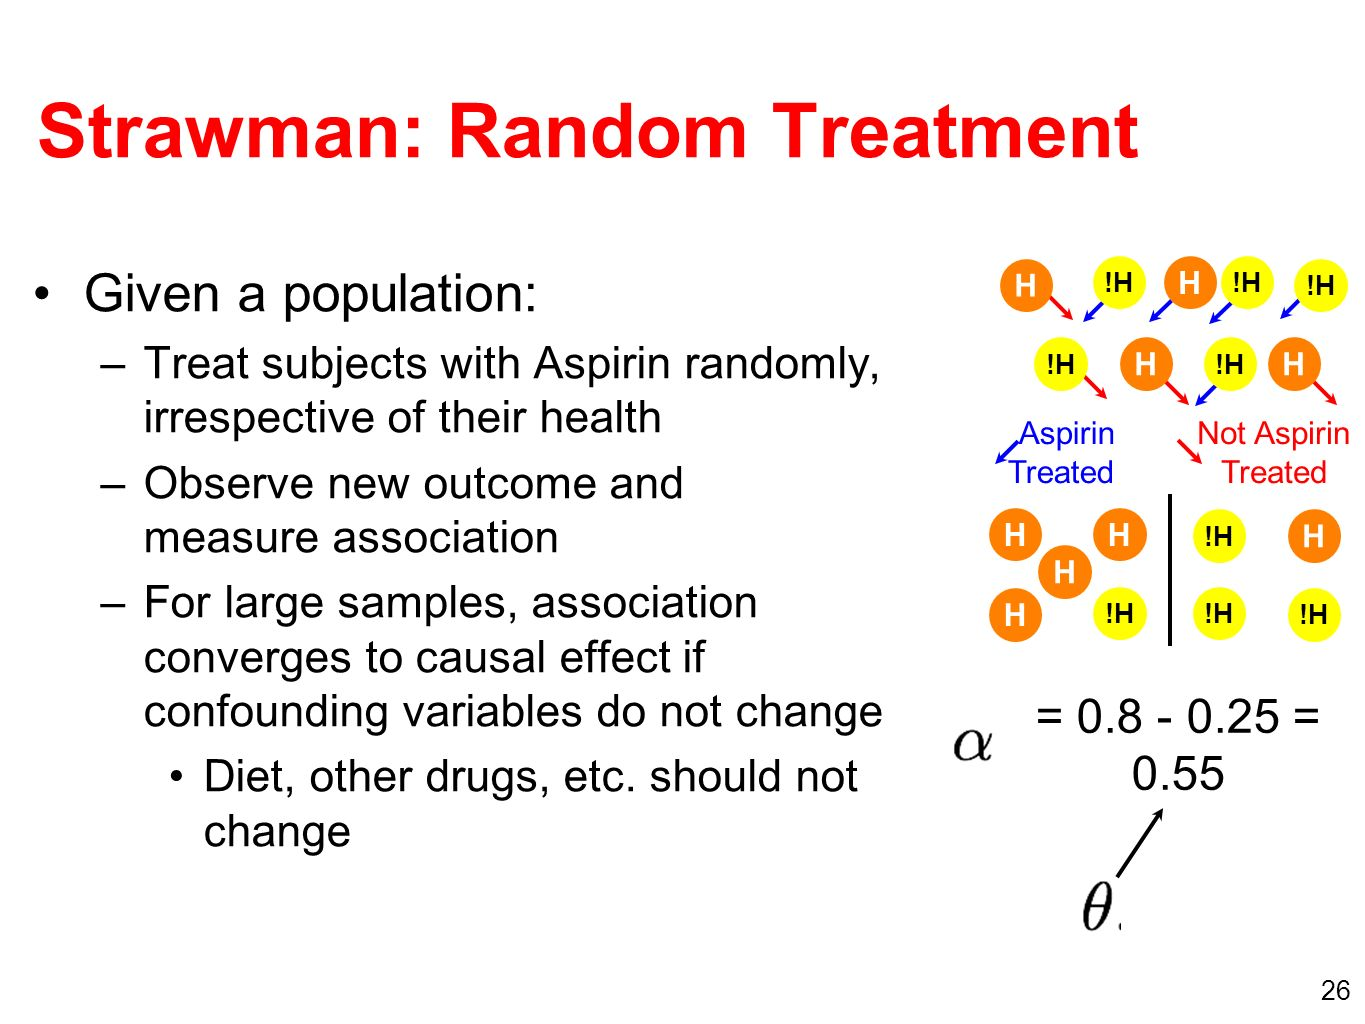 26 Aspirin Treated Not Aspirin Treated !H H H HH H H HH H = = 0.55 Strawman: Random Treatment Given a population: –Treat subjects with Aspirin randomly, irrespective of their health –Observe new outcome and measure association –For large samples, association converges to causal effect if confounding variables do not change Diet, other drugs, etc.